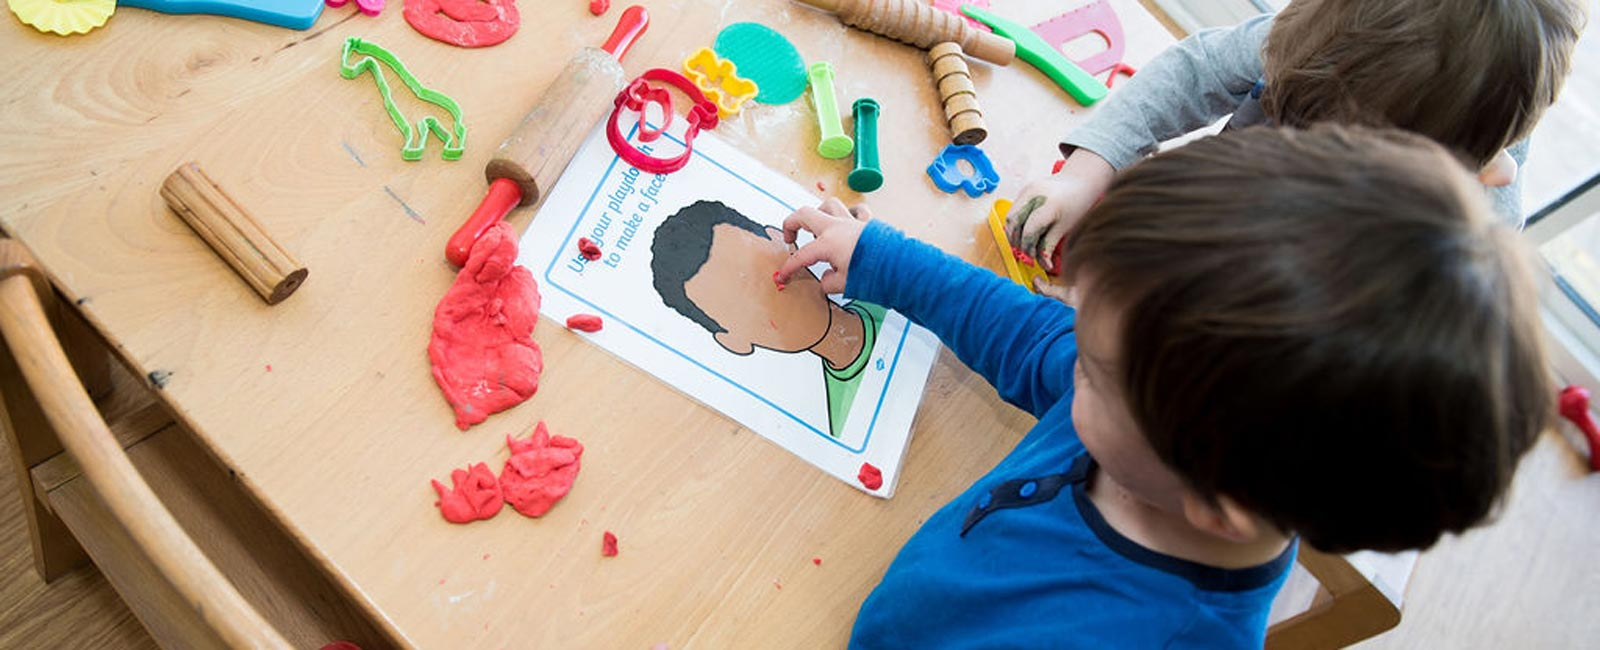 Our learning and development programmes are customised for each individual child.